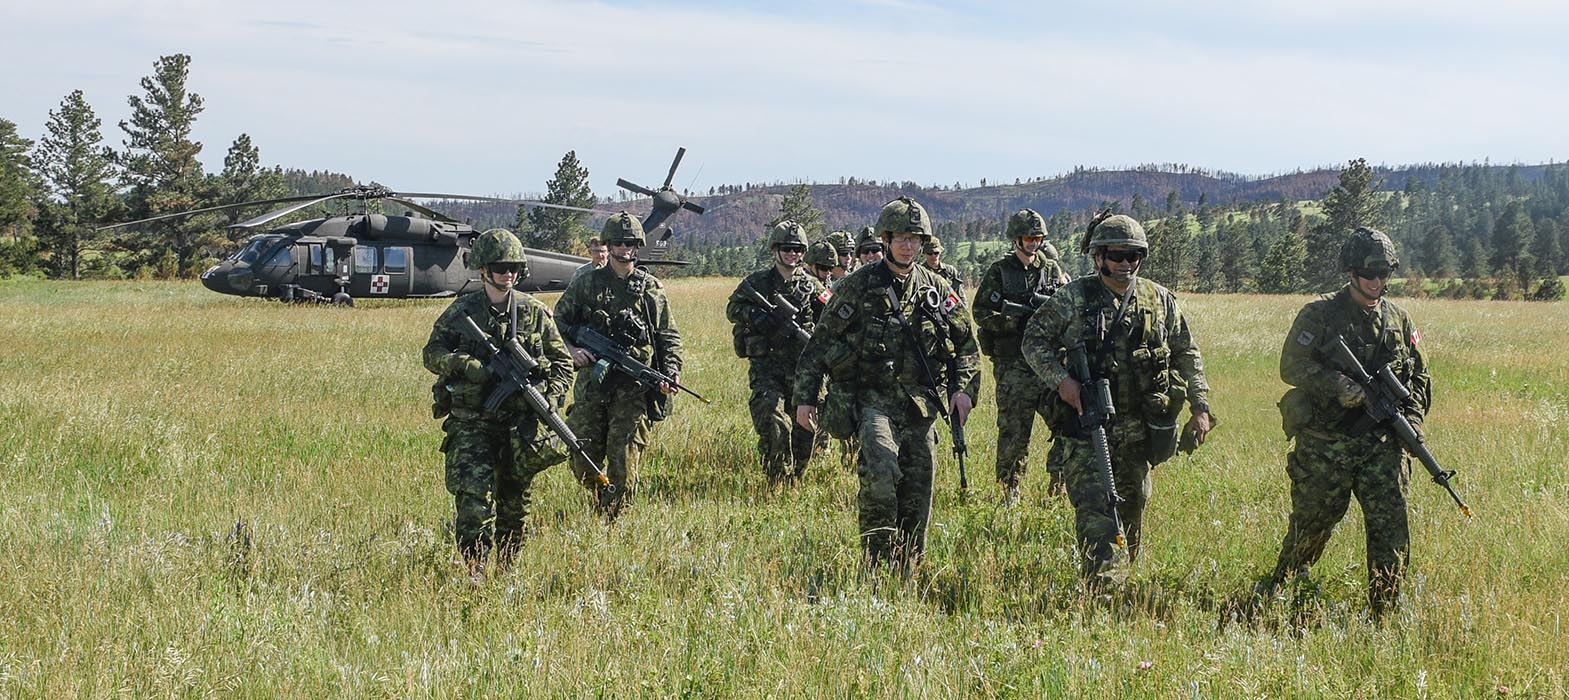 Corporal Jessica Bonner, a Reservist with 38 Service Battalion (left), with members of Task Force 38 Quick Reaction Force, tour the UH-60 Blackhawk helicopter from the G 2-211th Aviation Regiment of the Wyoming Army National Guard in Custer State Park, South Dakota on June 15, 2018 during Exercise GOLDEN COYOTE 2018. Photo: Second Lieutenant Natasha Tersigni, 38 Canadian Brigade Group Public Affairs. ©2018 DND/MDN Canada